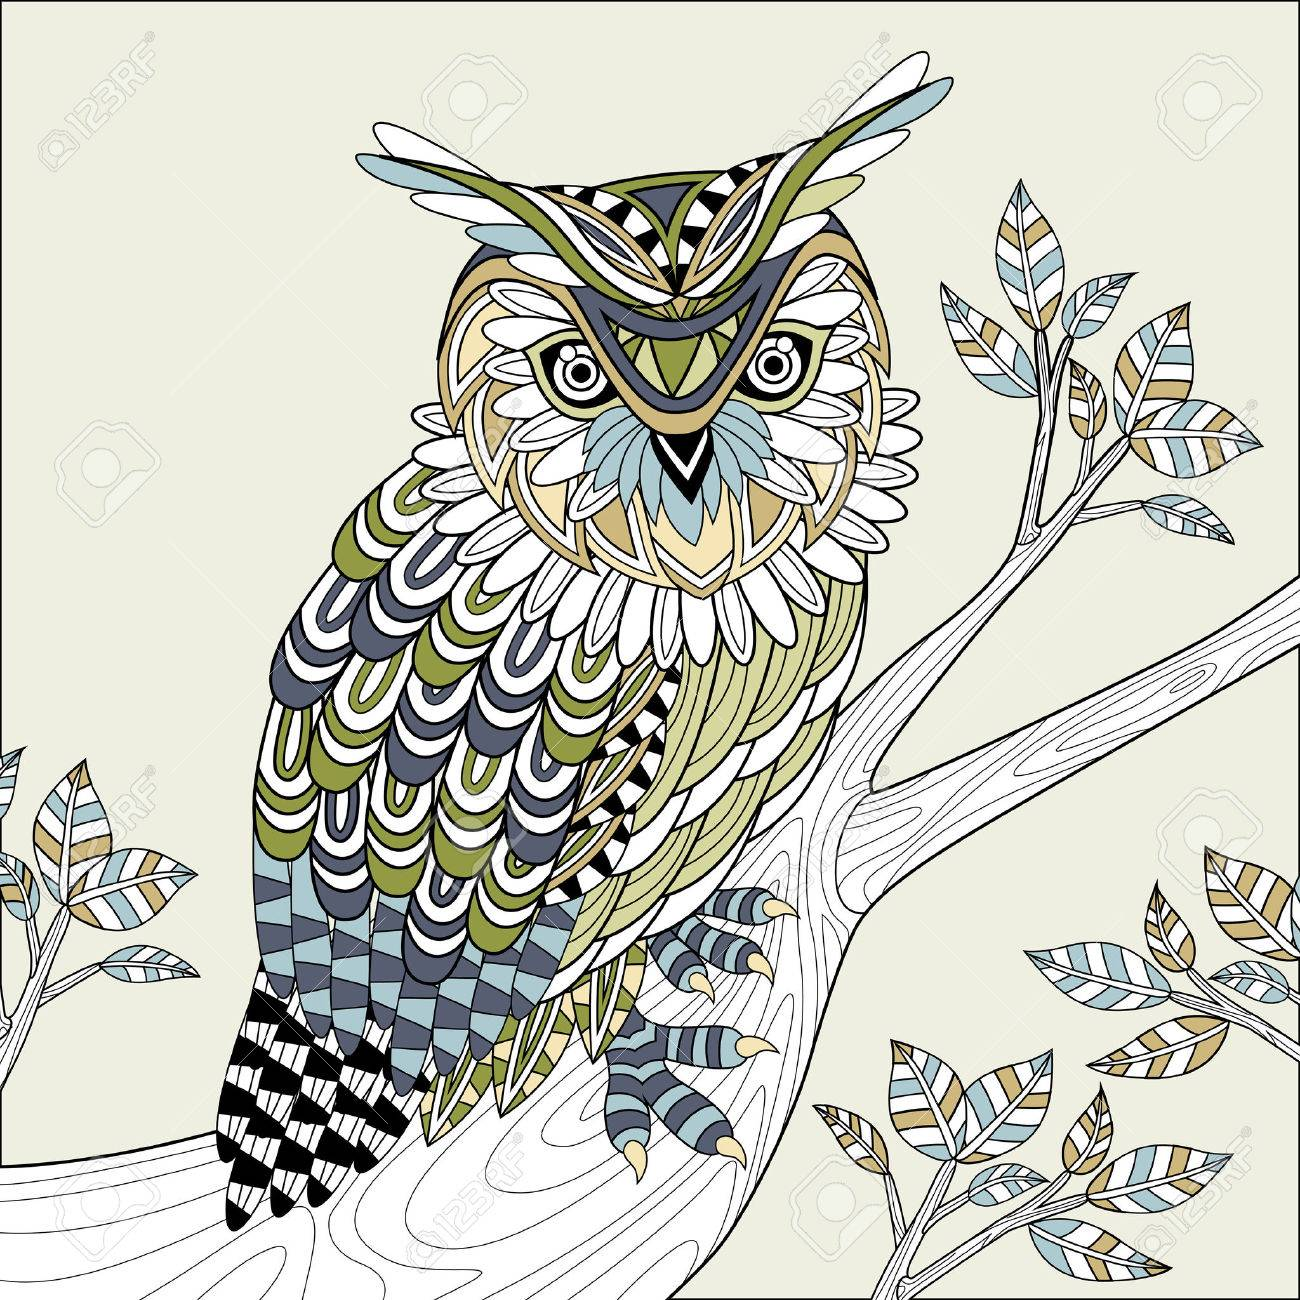 Wise Owl Coloring Page In Exquisite Style Stock Vector